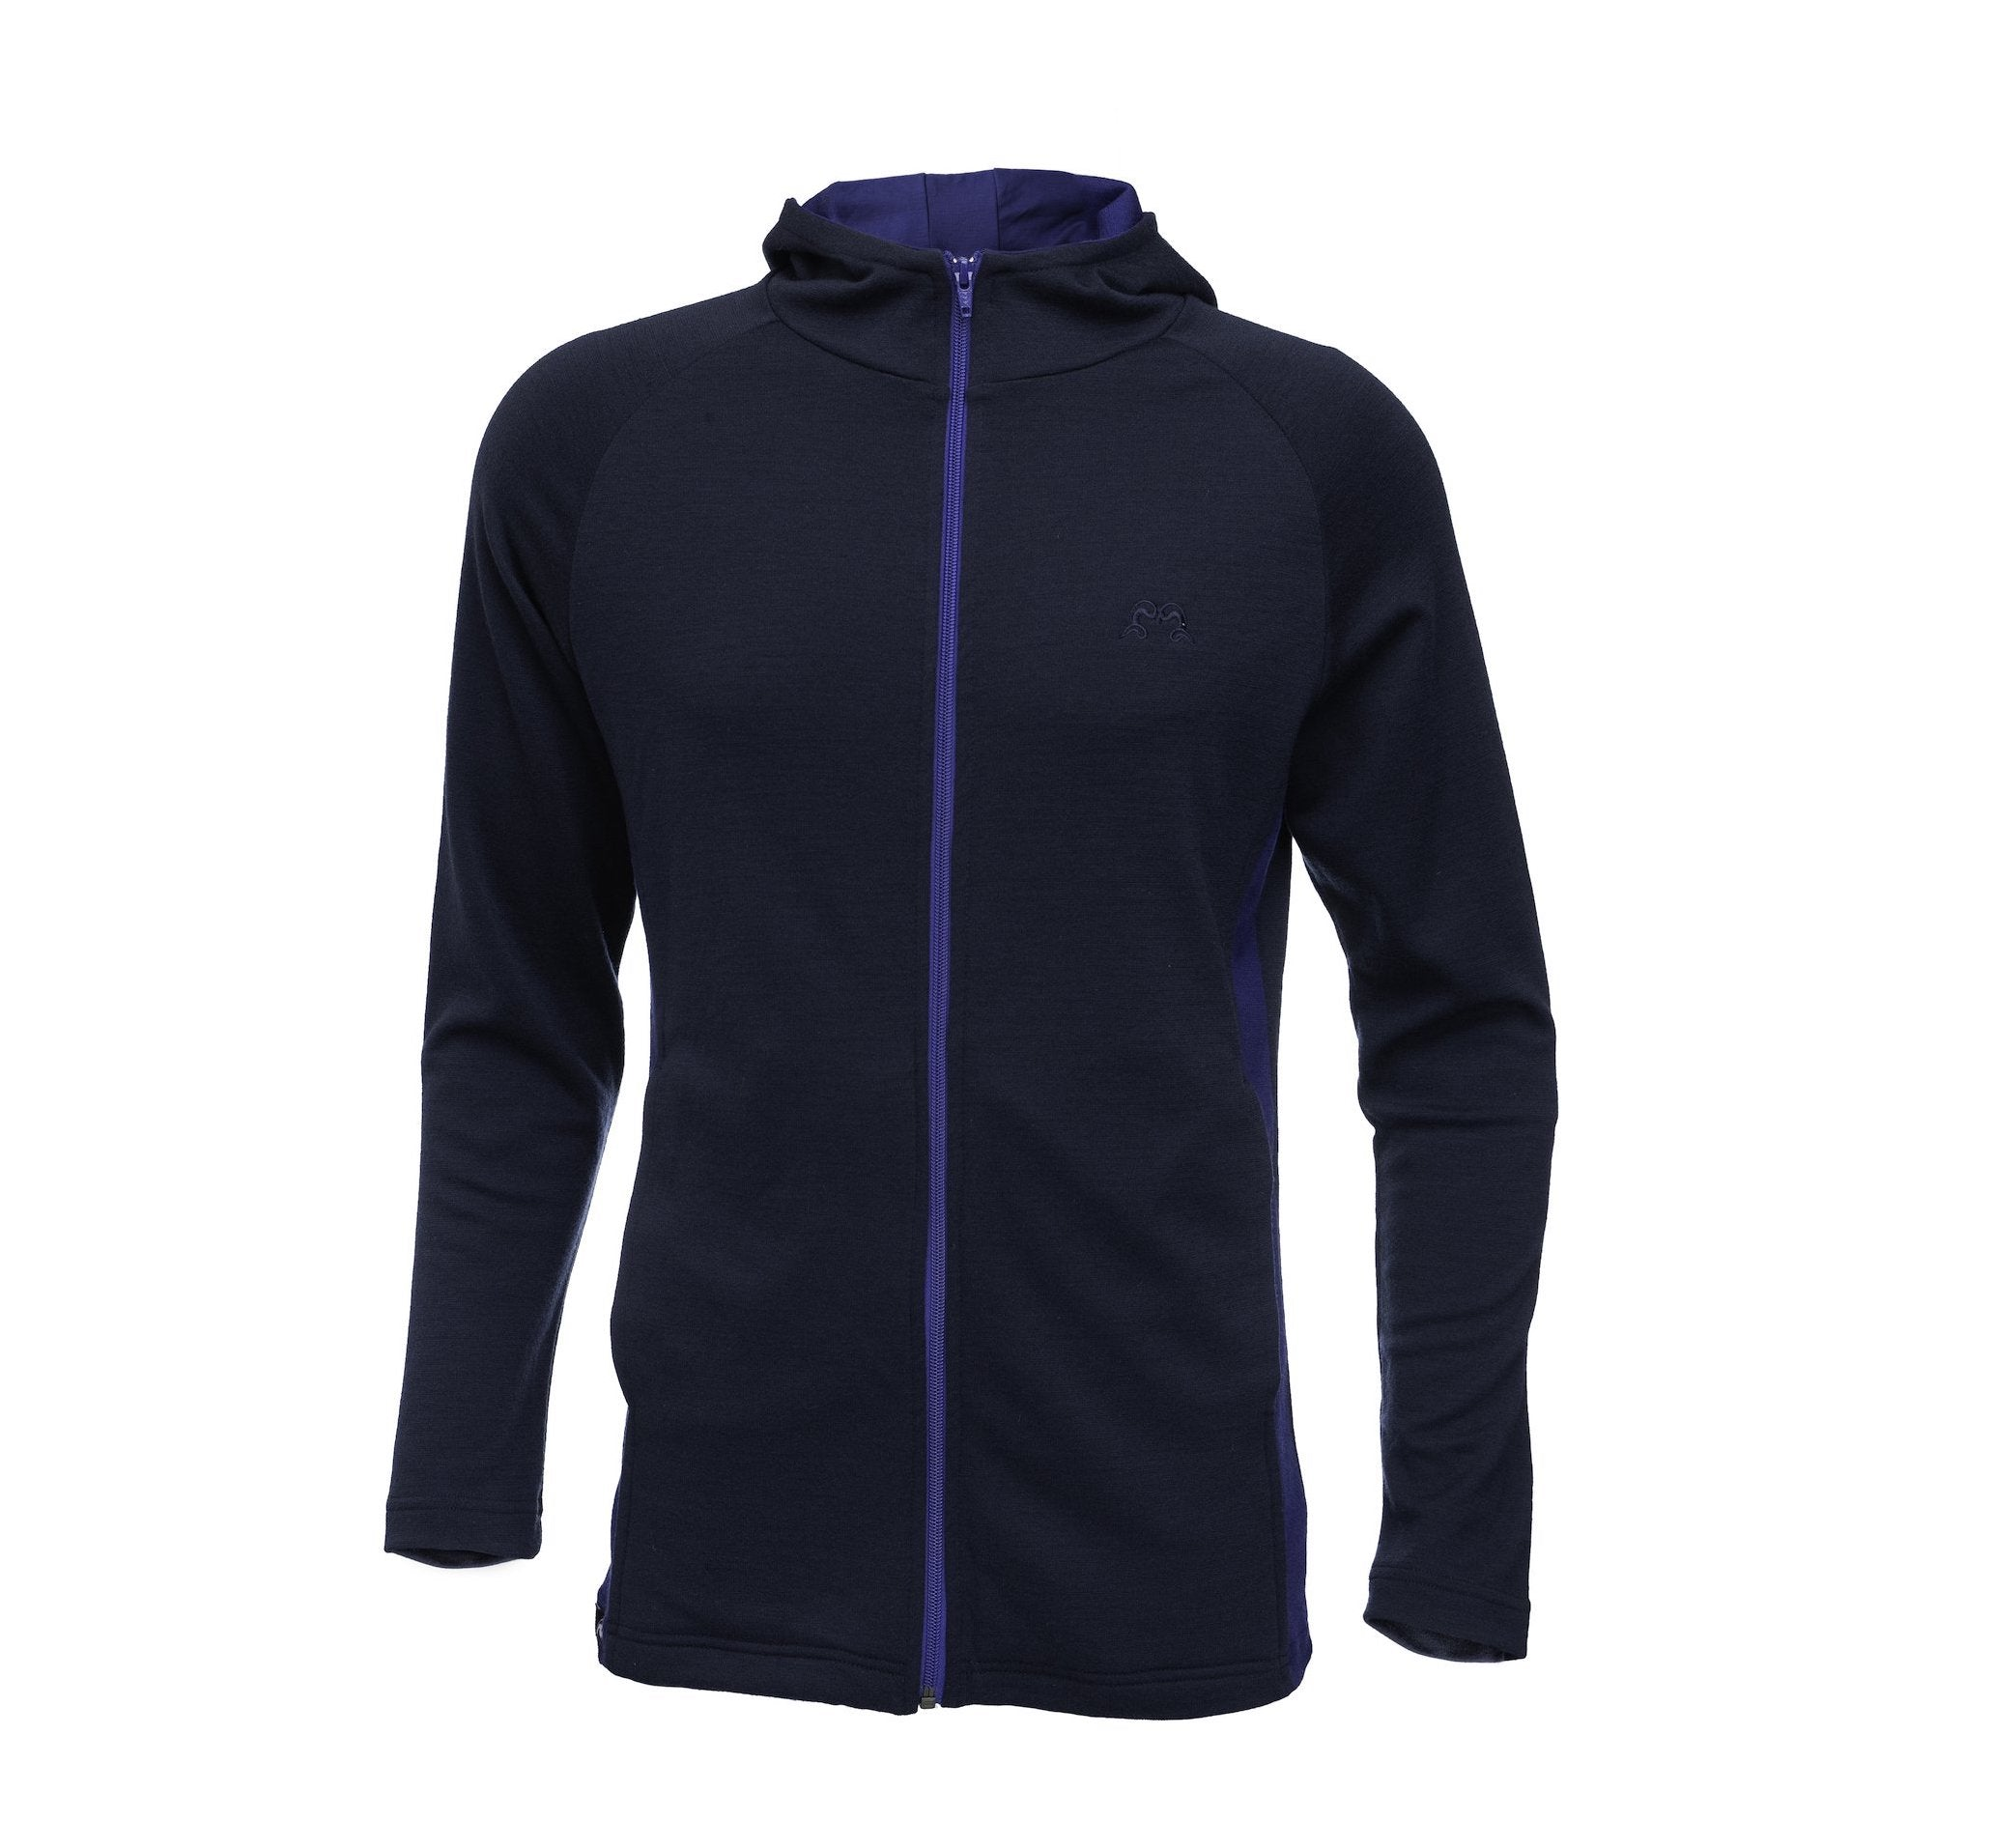 MEN'S MERINO WOOL 300 AKAROA LONG SLEEVE ZIP HOODIE  - NAVY & INDIGO